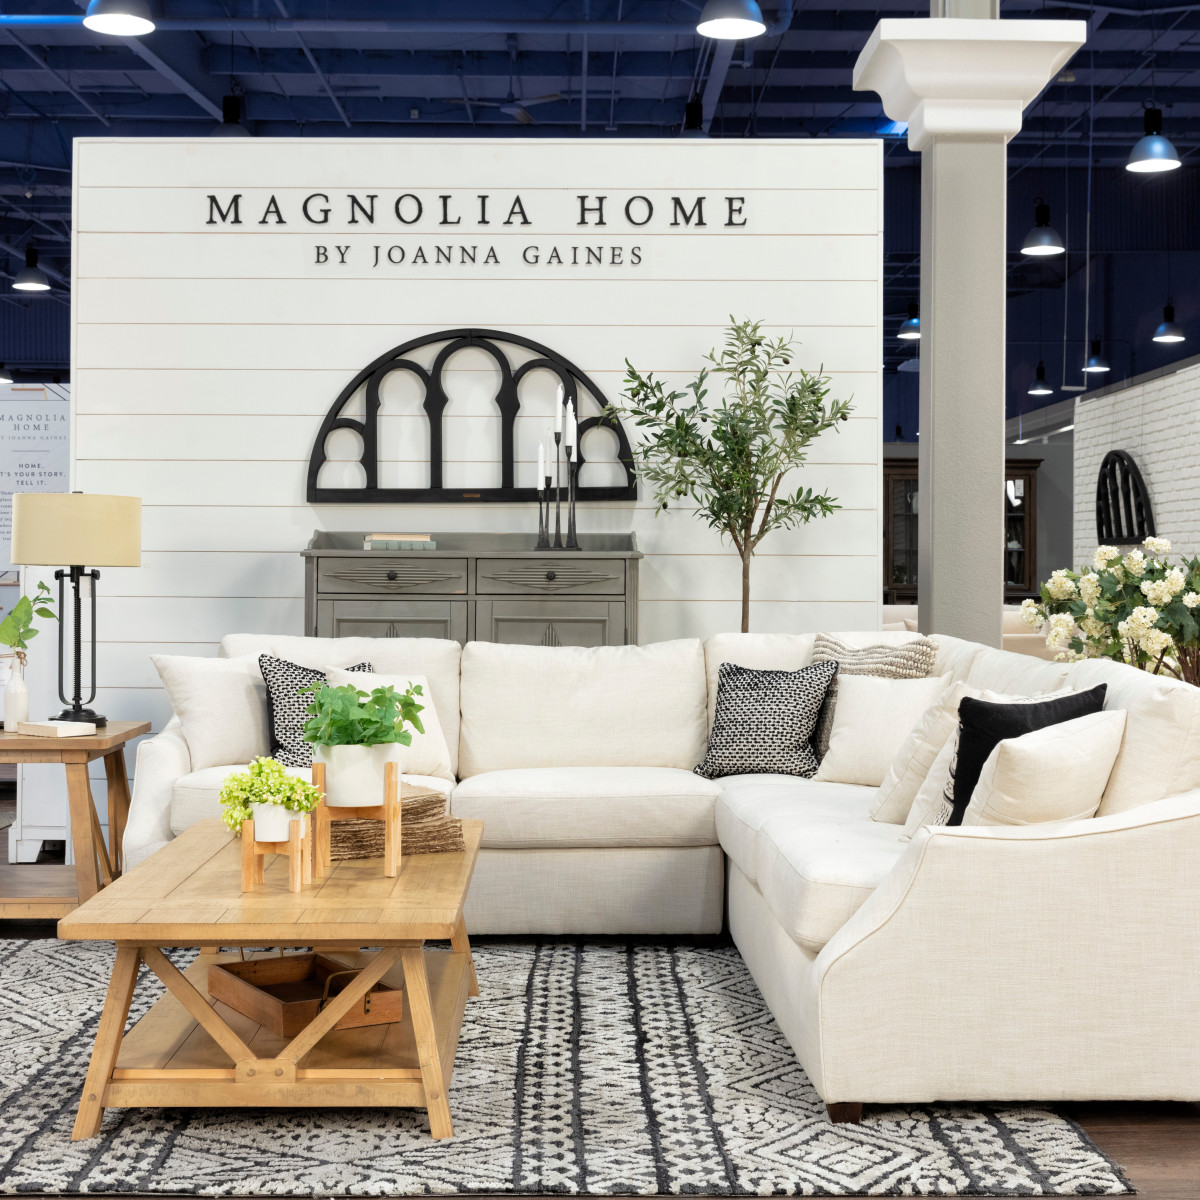 Home Decor Stores Dallas Tx: West Coast Home Store Greets DFW With Special Treat From